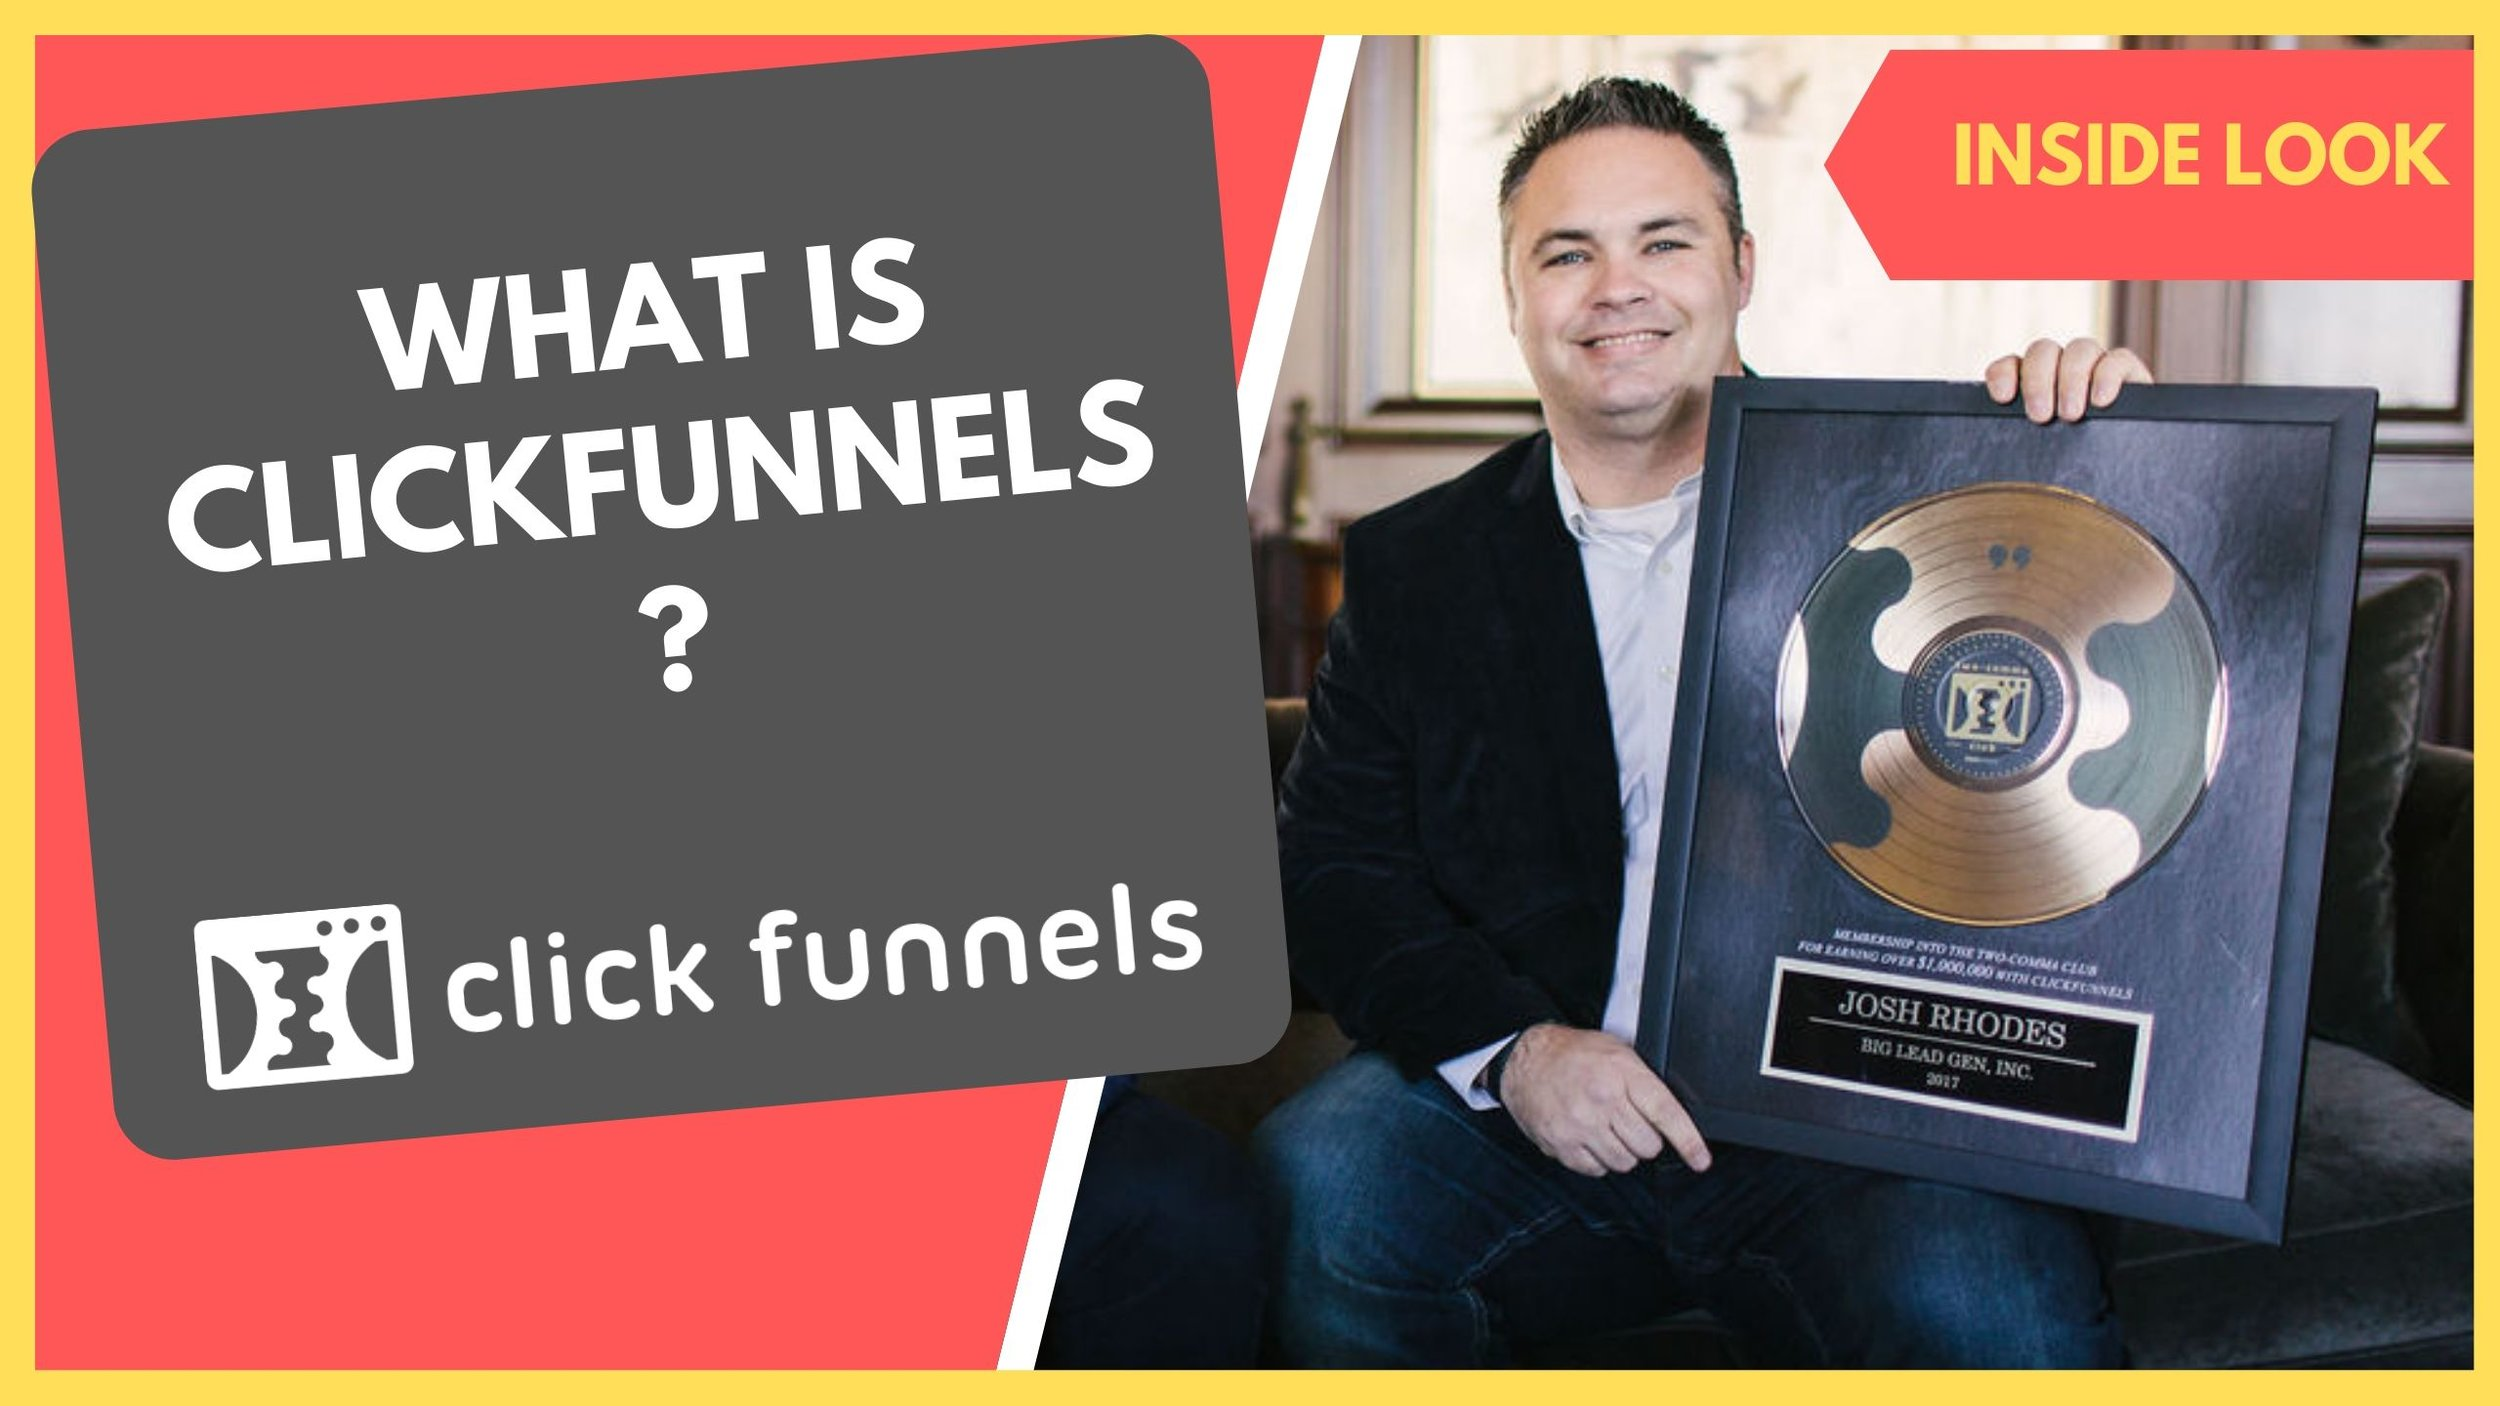 How To Find The Html Code In Clickfunnels